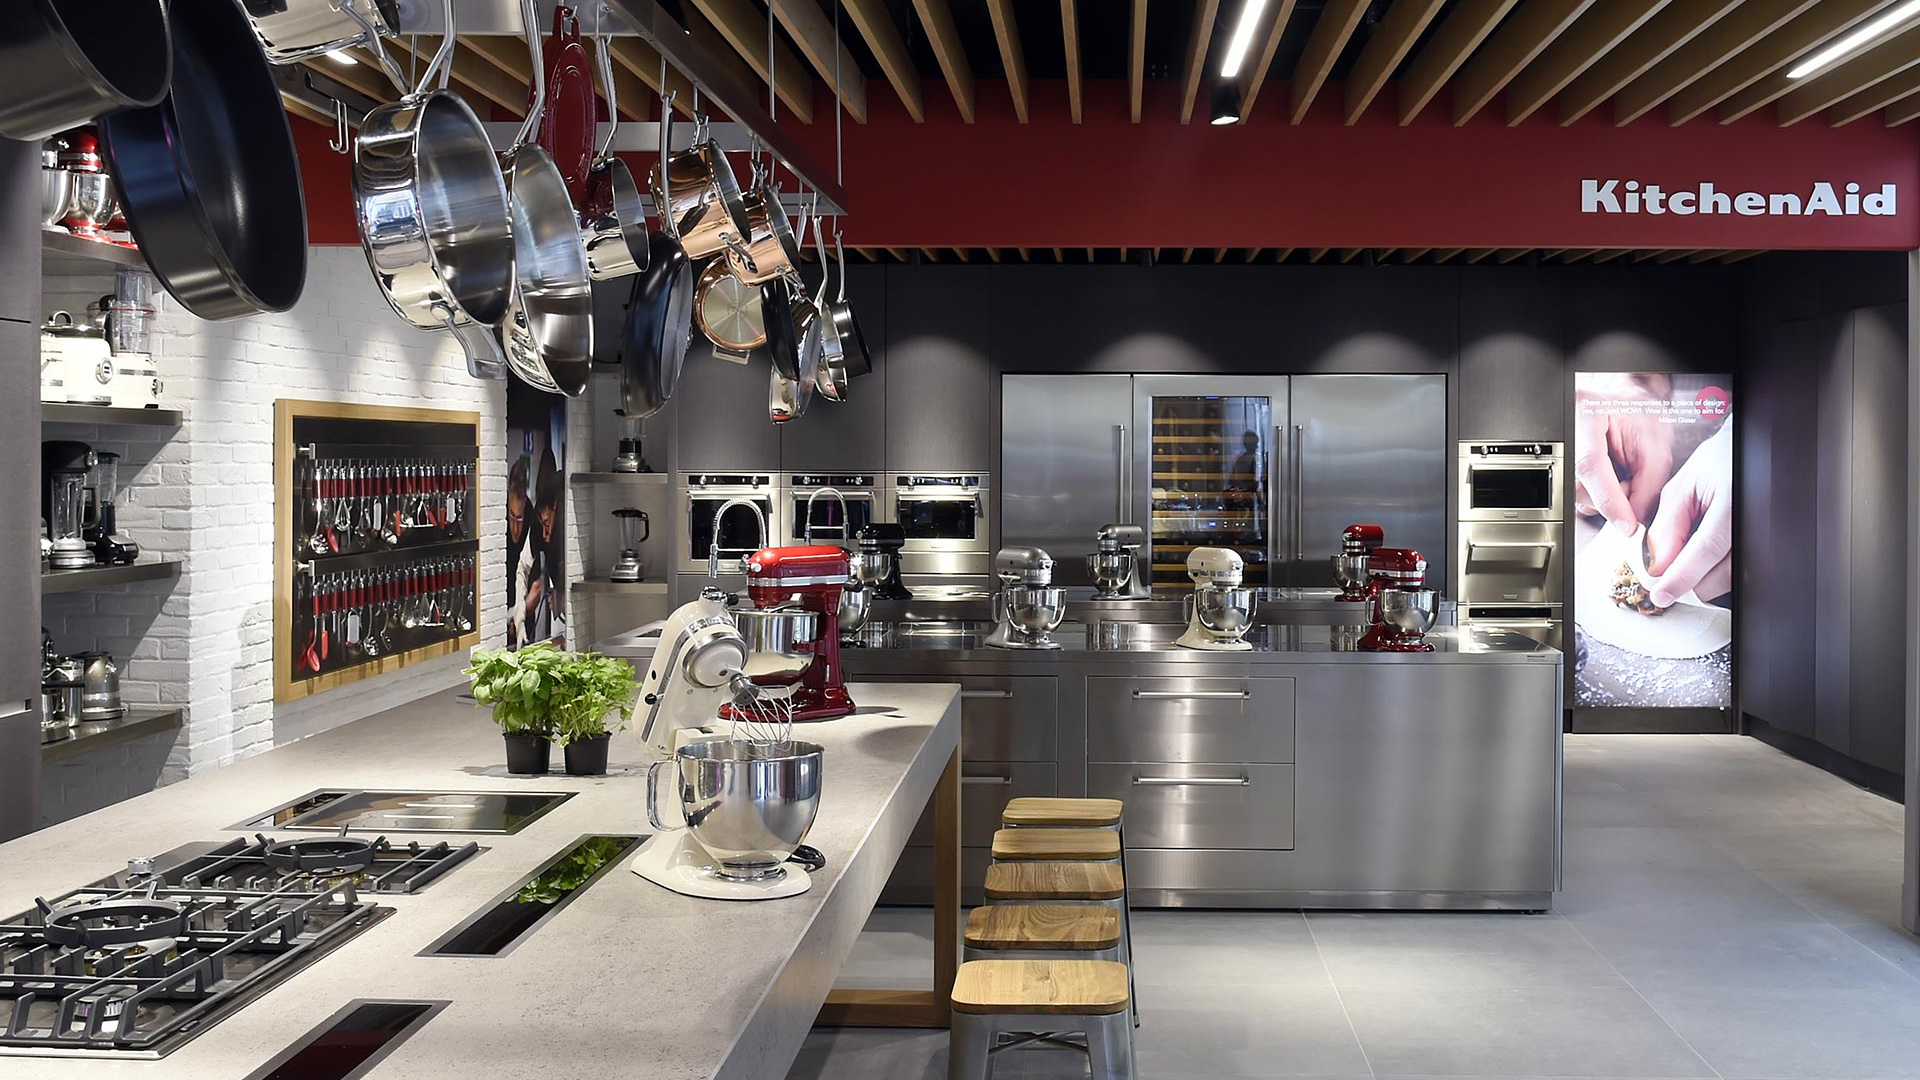 Win a KitchenAid fridge and a cooking class for two